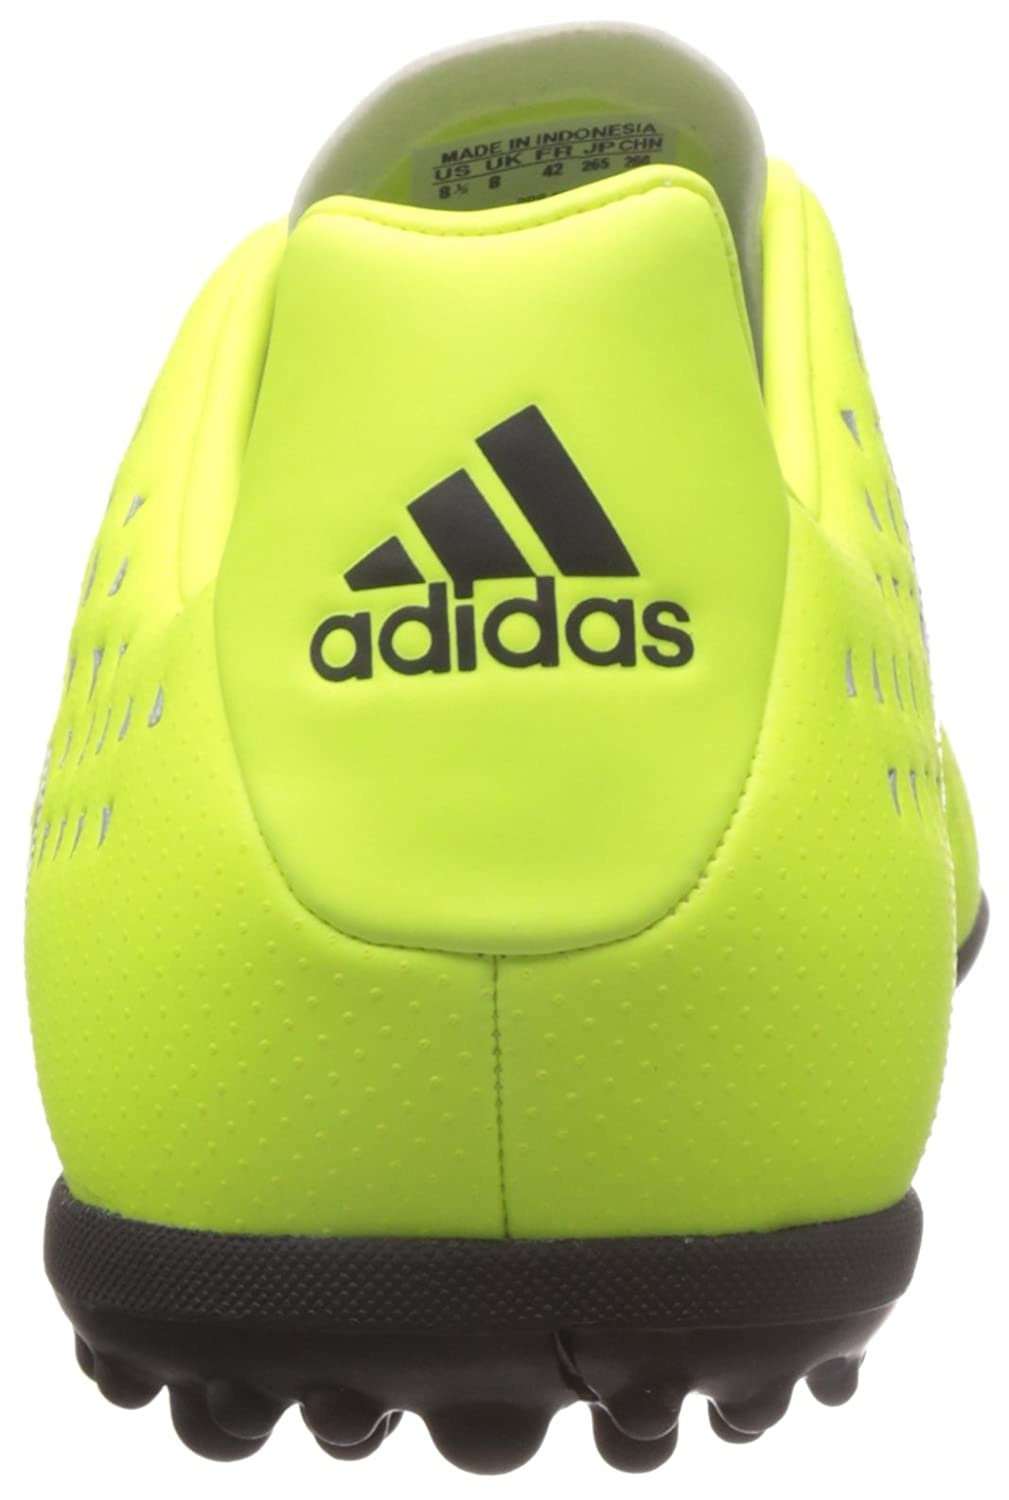 adidas Ace TF, Chaussures Chaussures de Ace B01G4EVPE0 Football